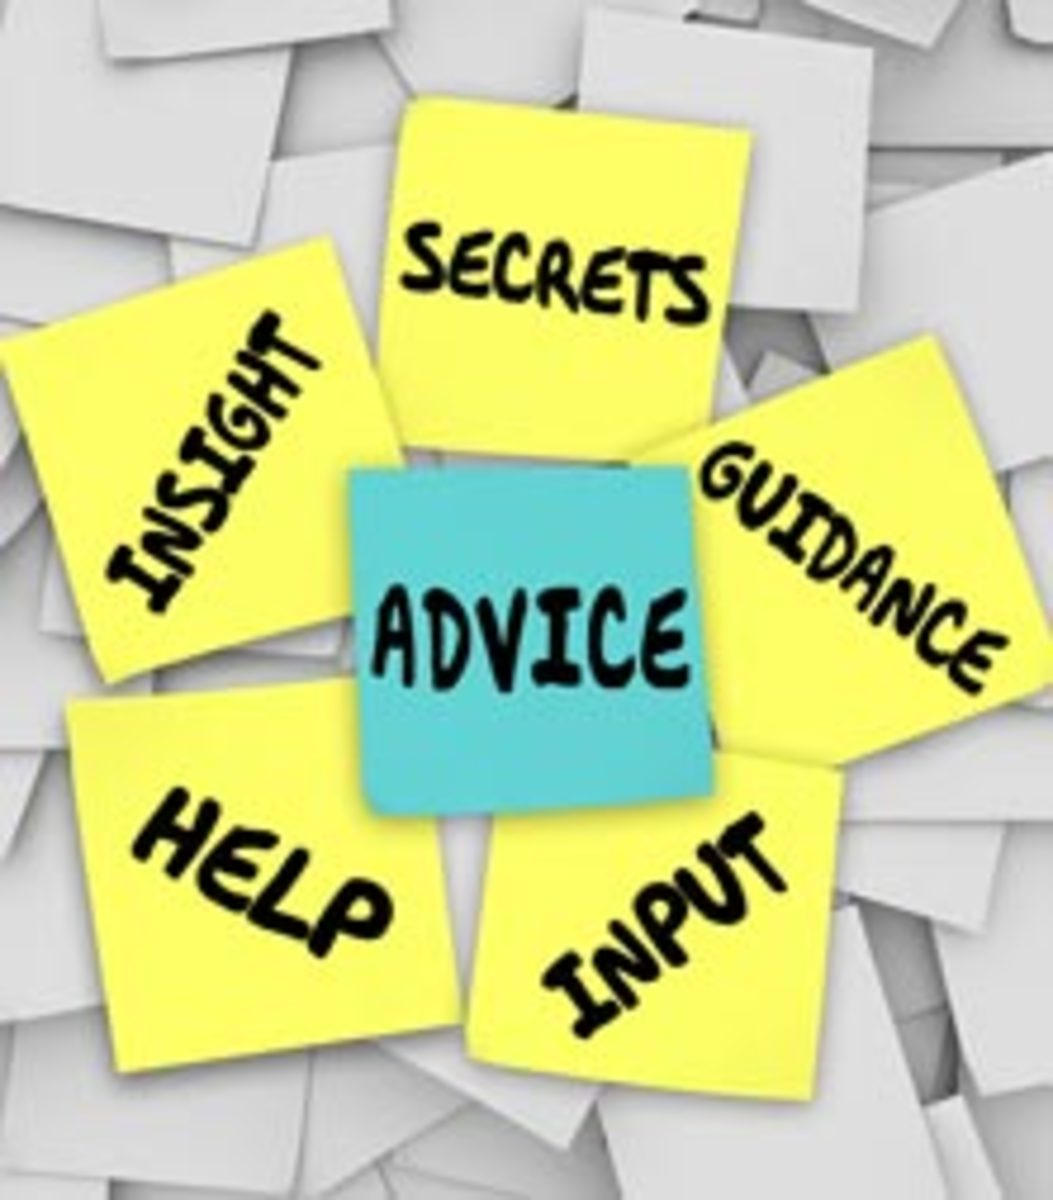 bigstock-Advice-words-on-sticky-notes-i-77774915-featured